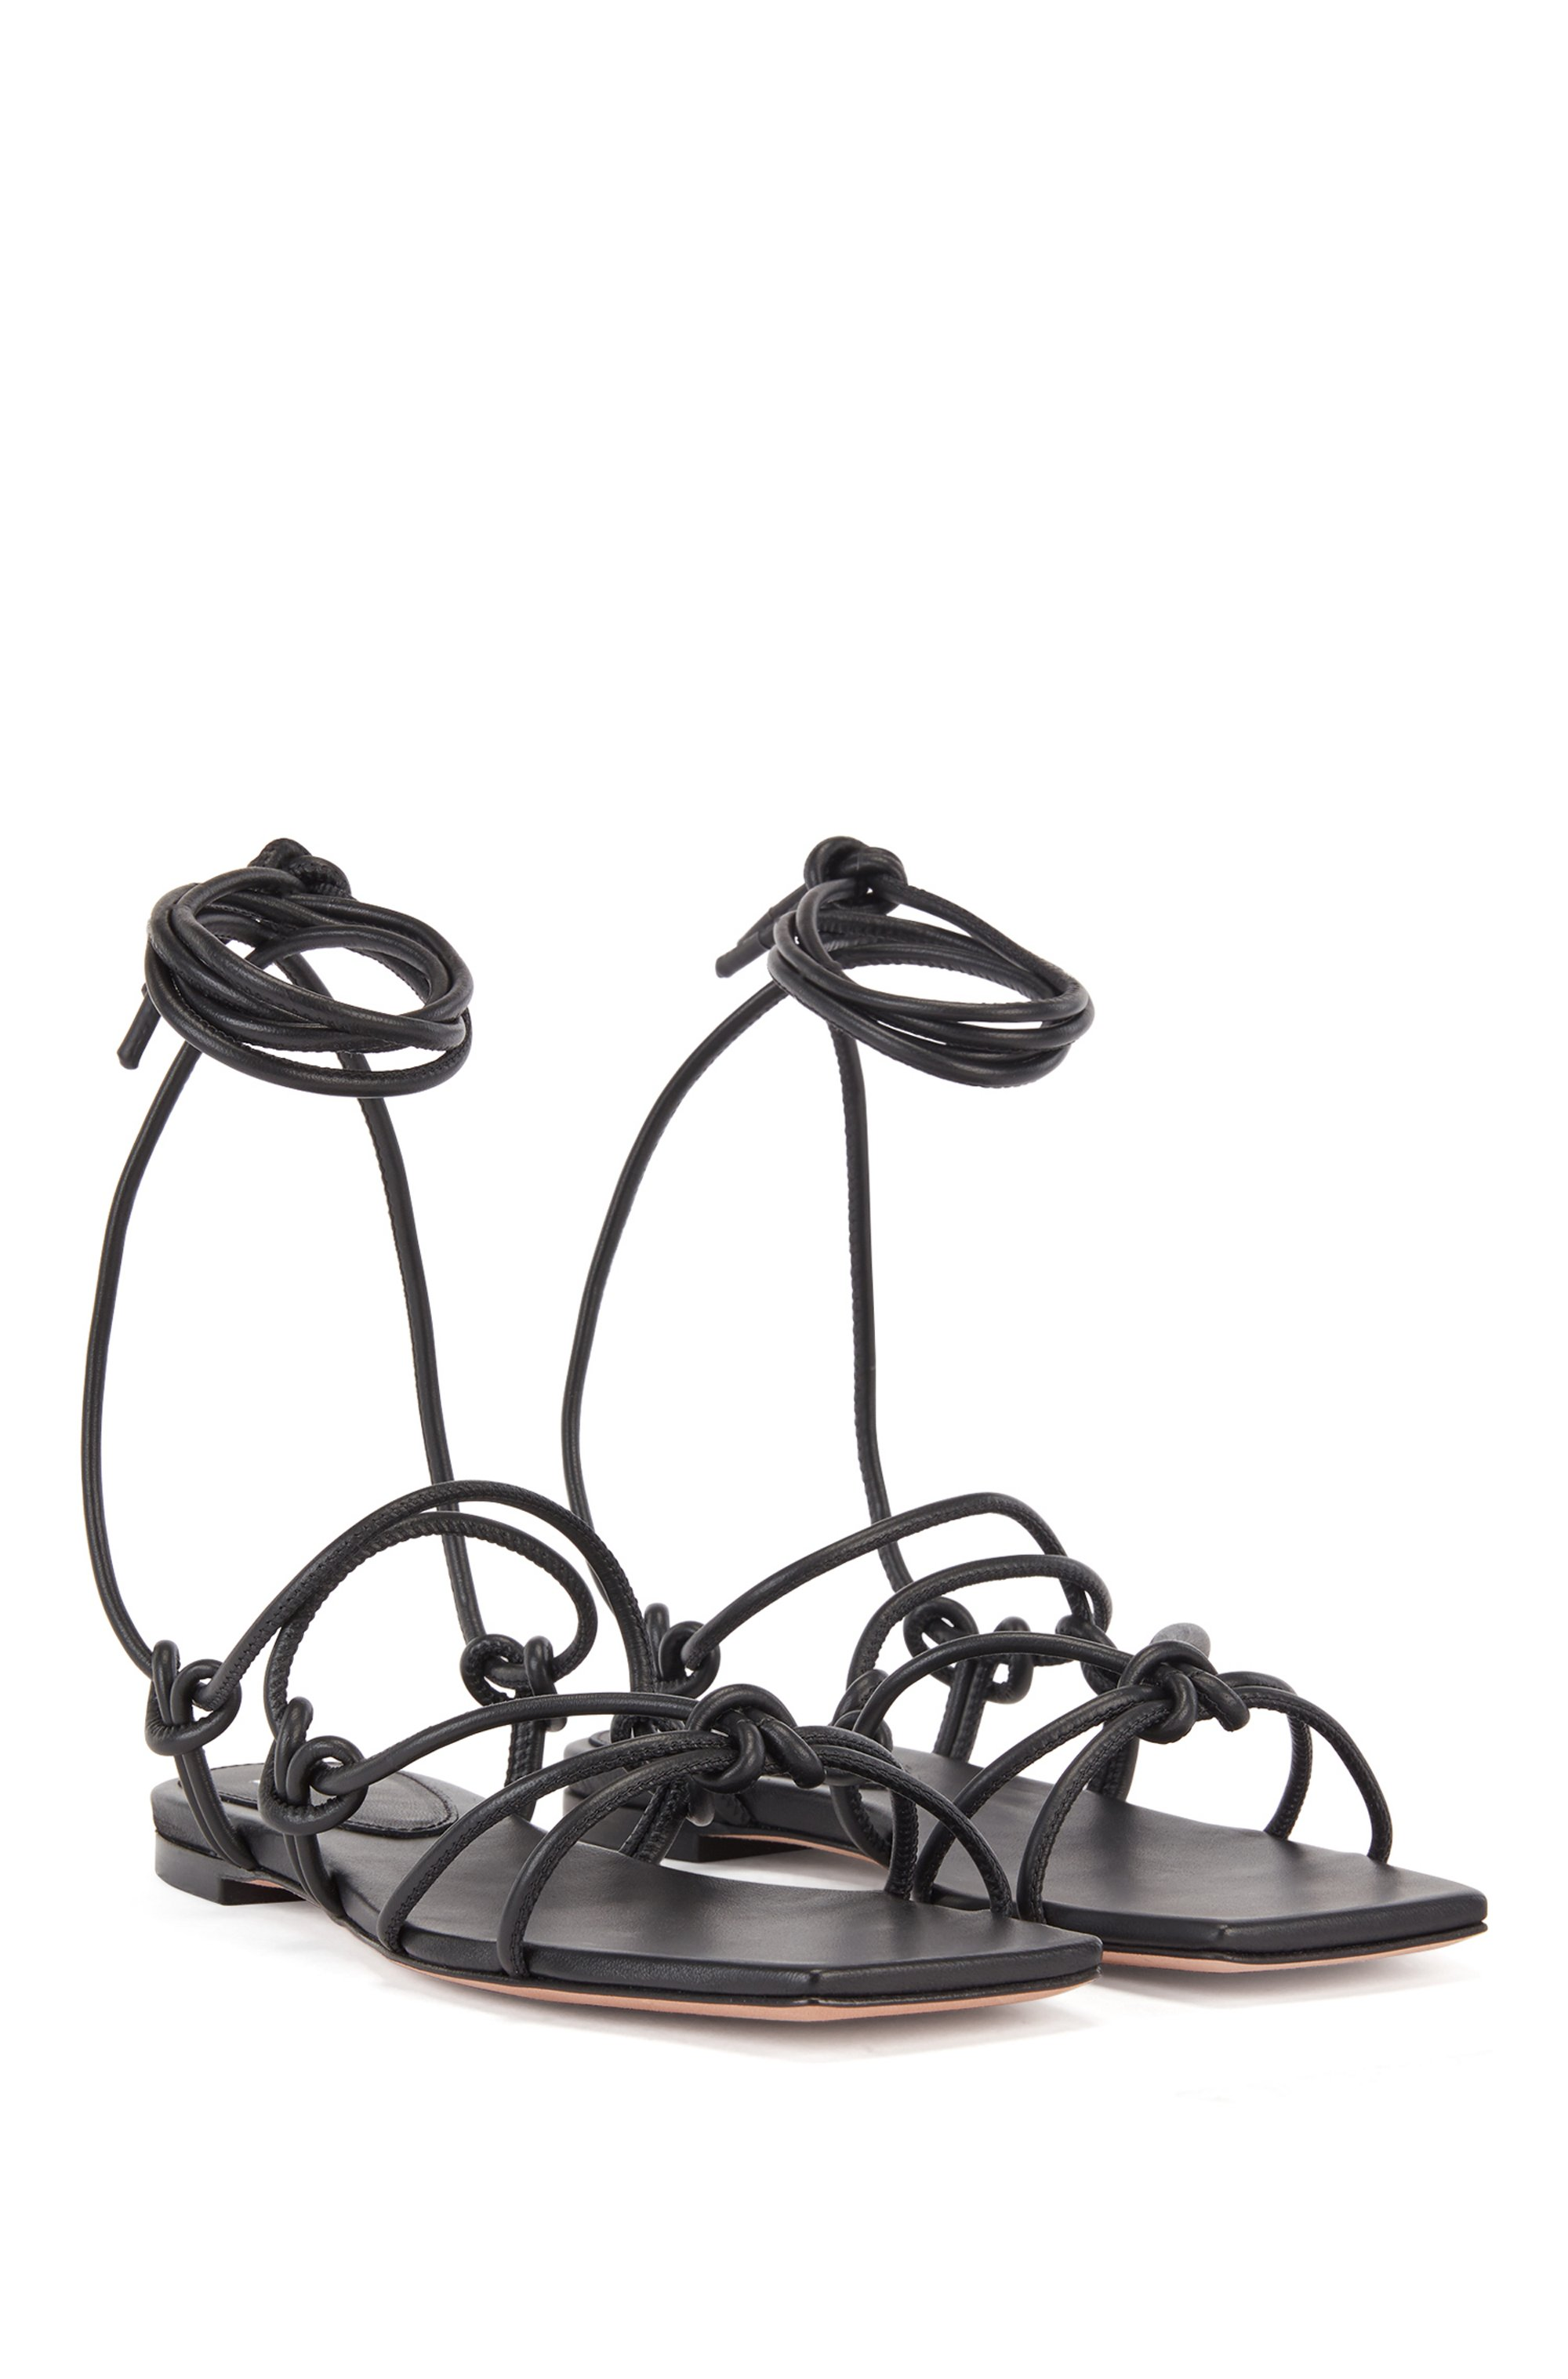 Flat sandals in nappa leather with tie-up straps